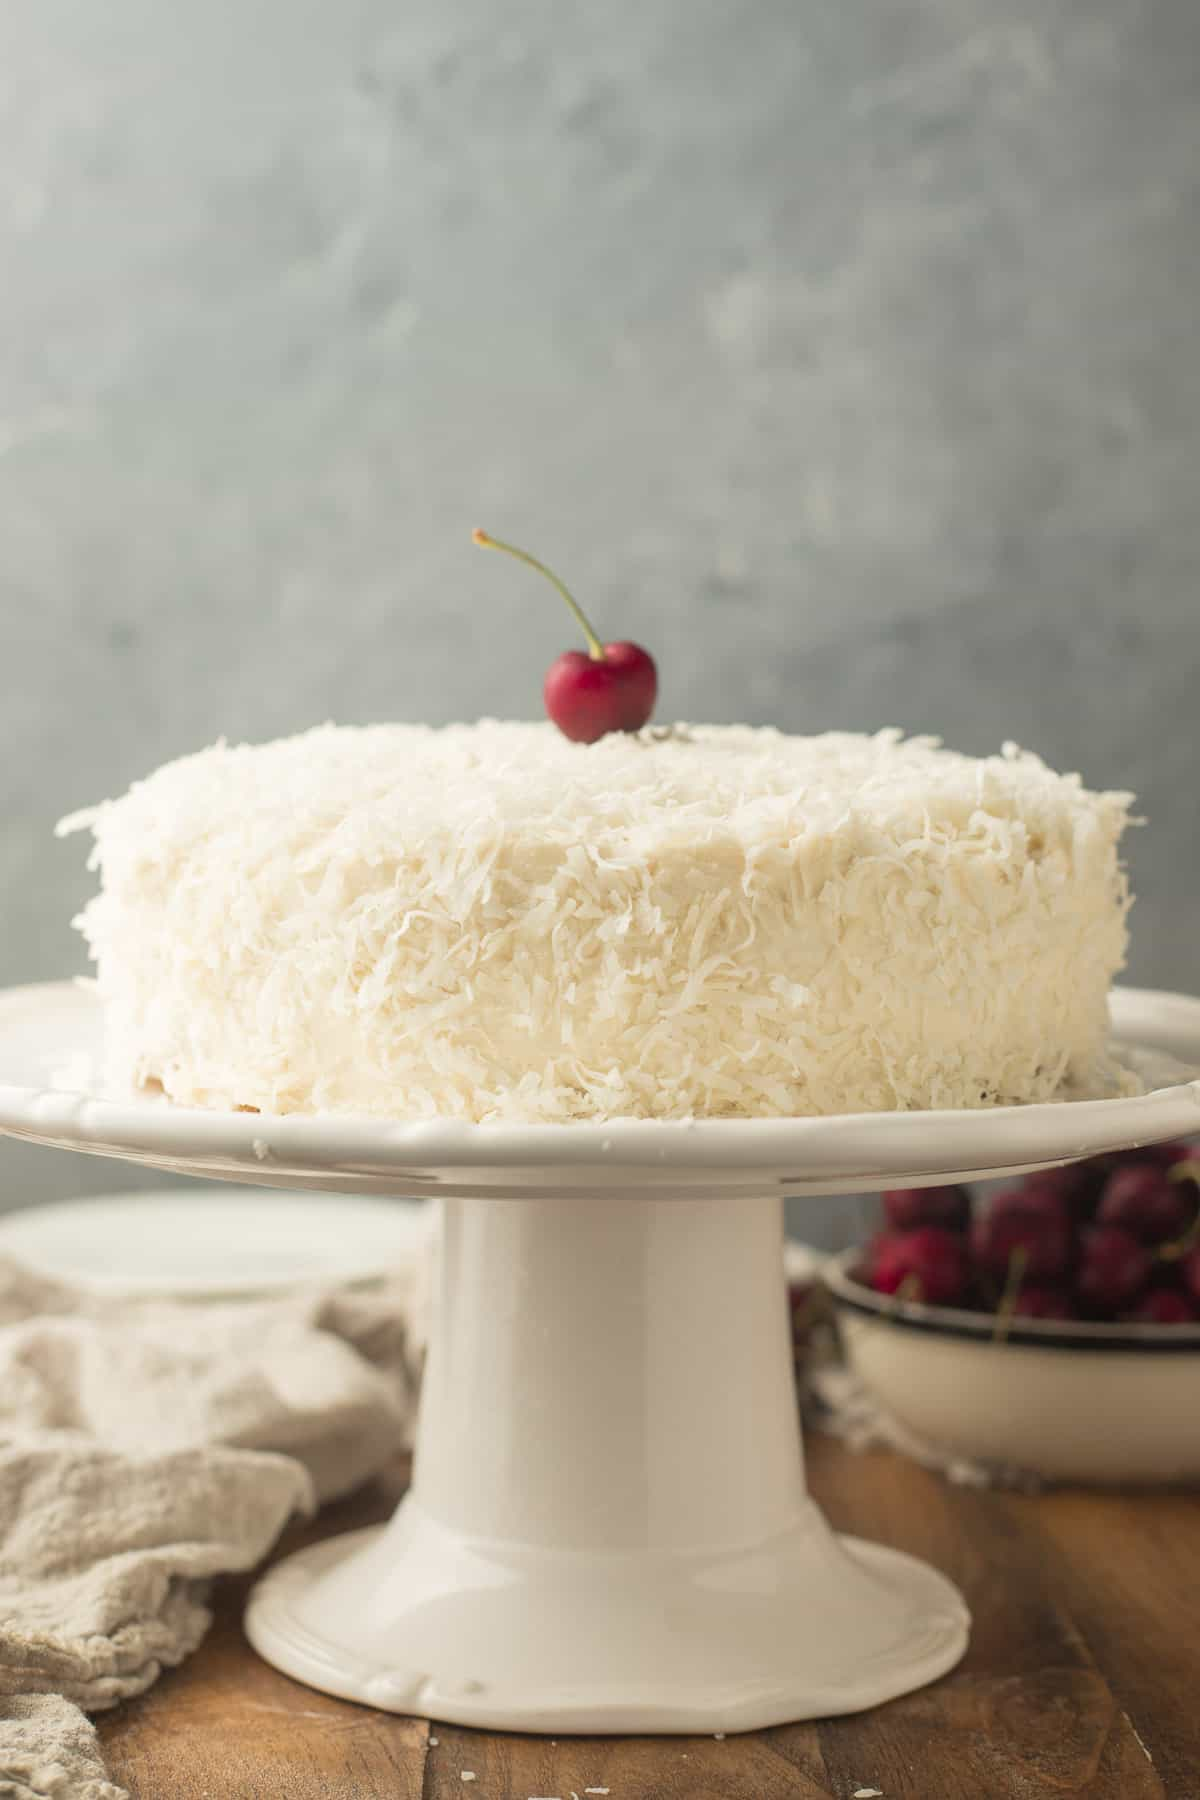 Vegan Coconut Cake on a Cake Dish with a Cherry on Top